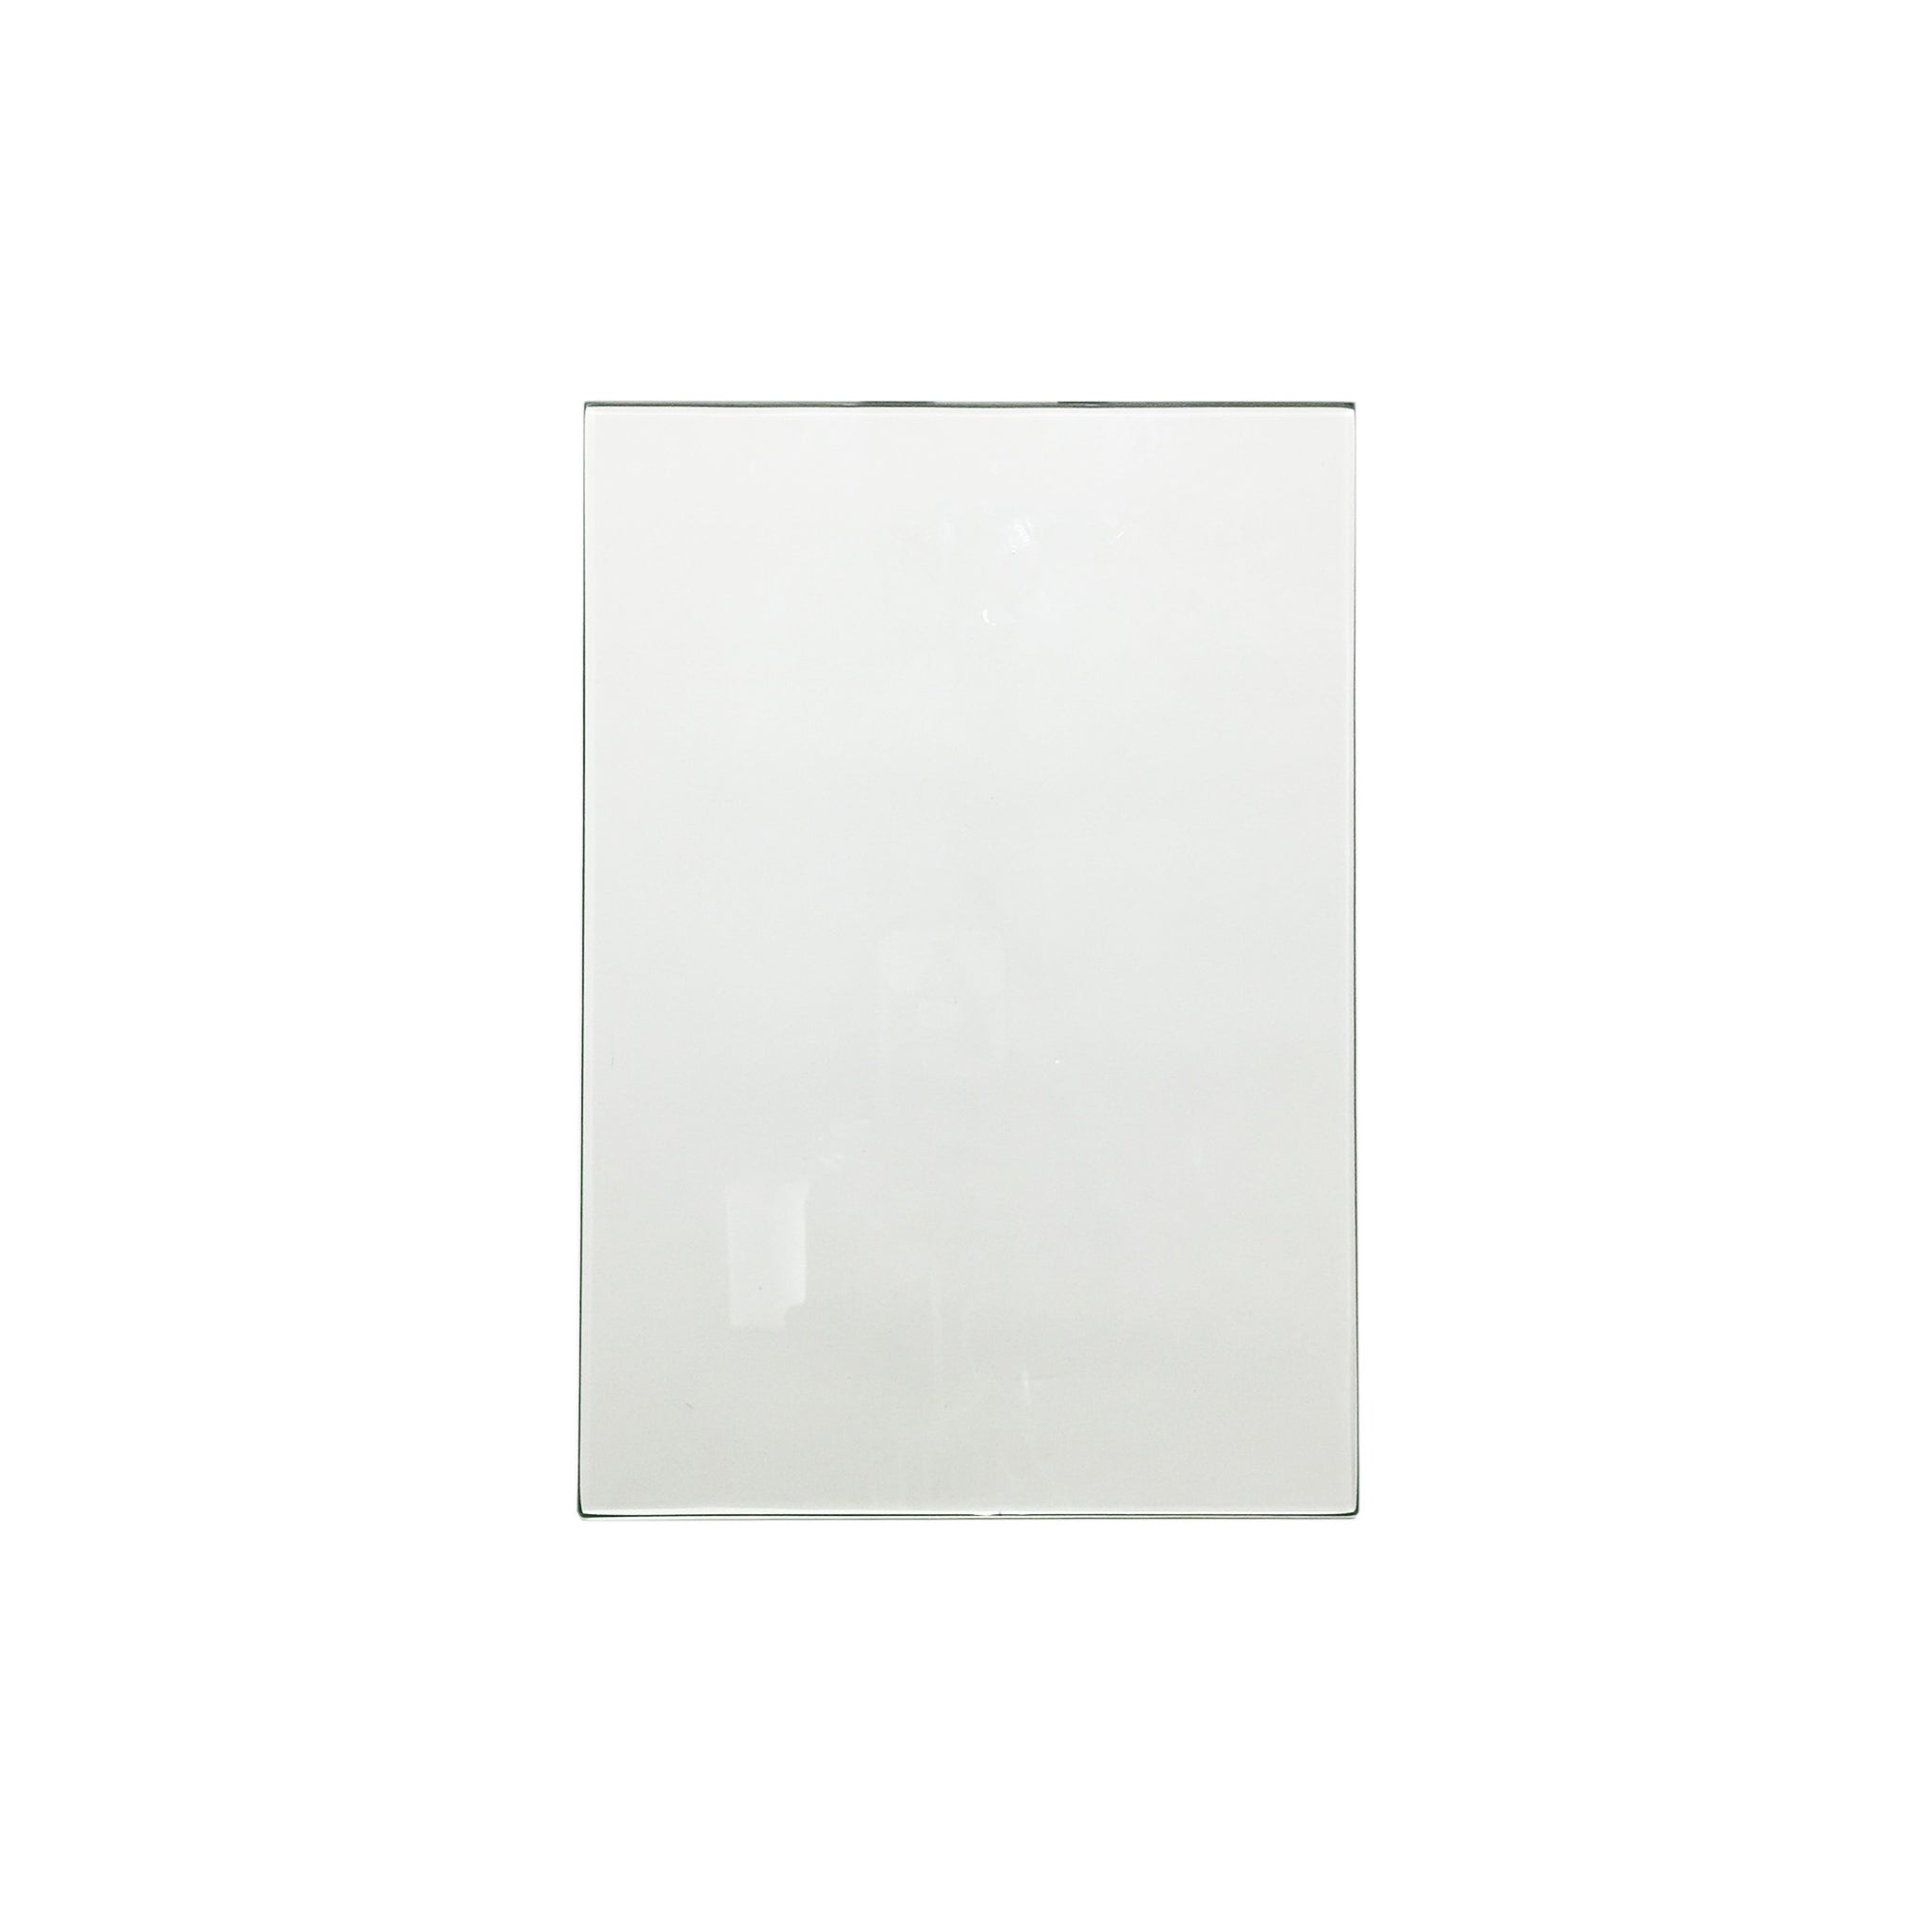 "9""x12"" 1/4"" Thick Glass Pane"